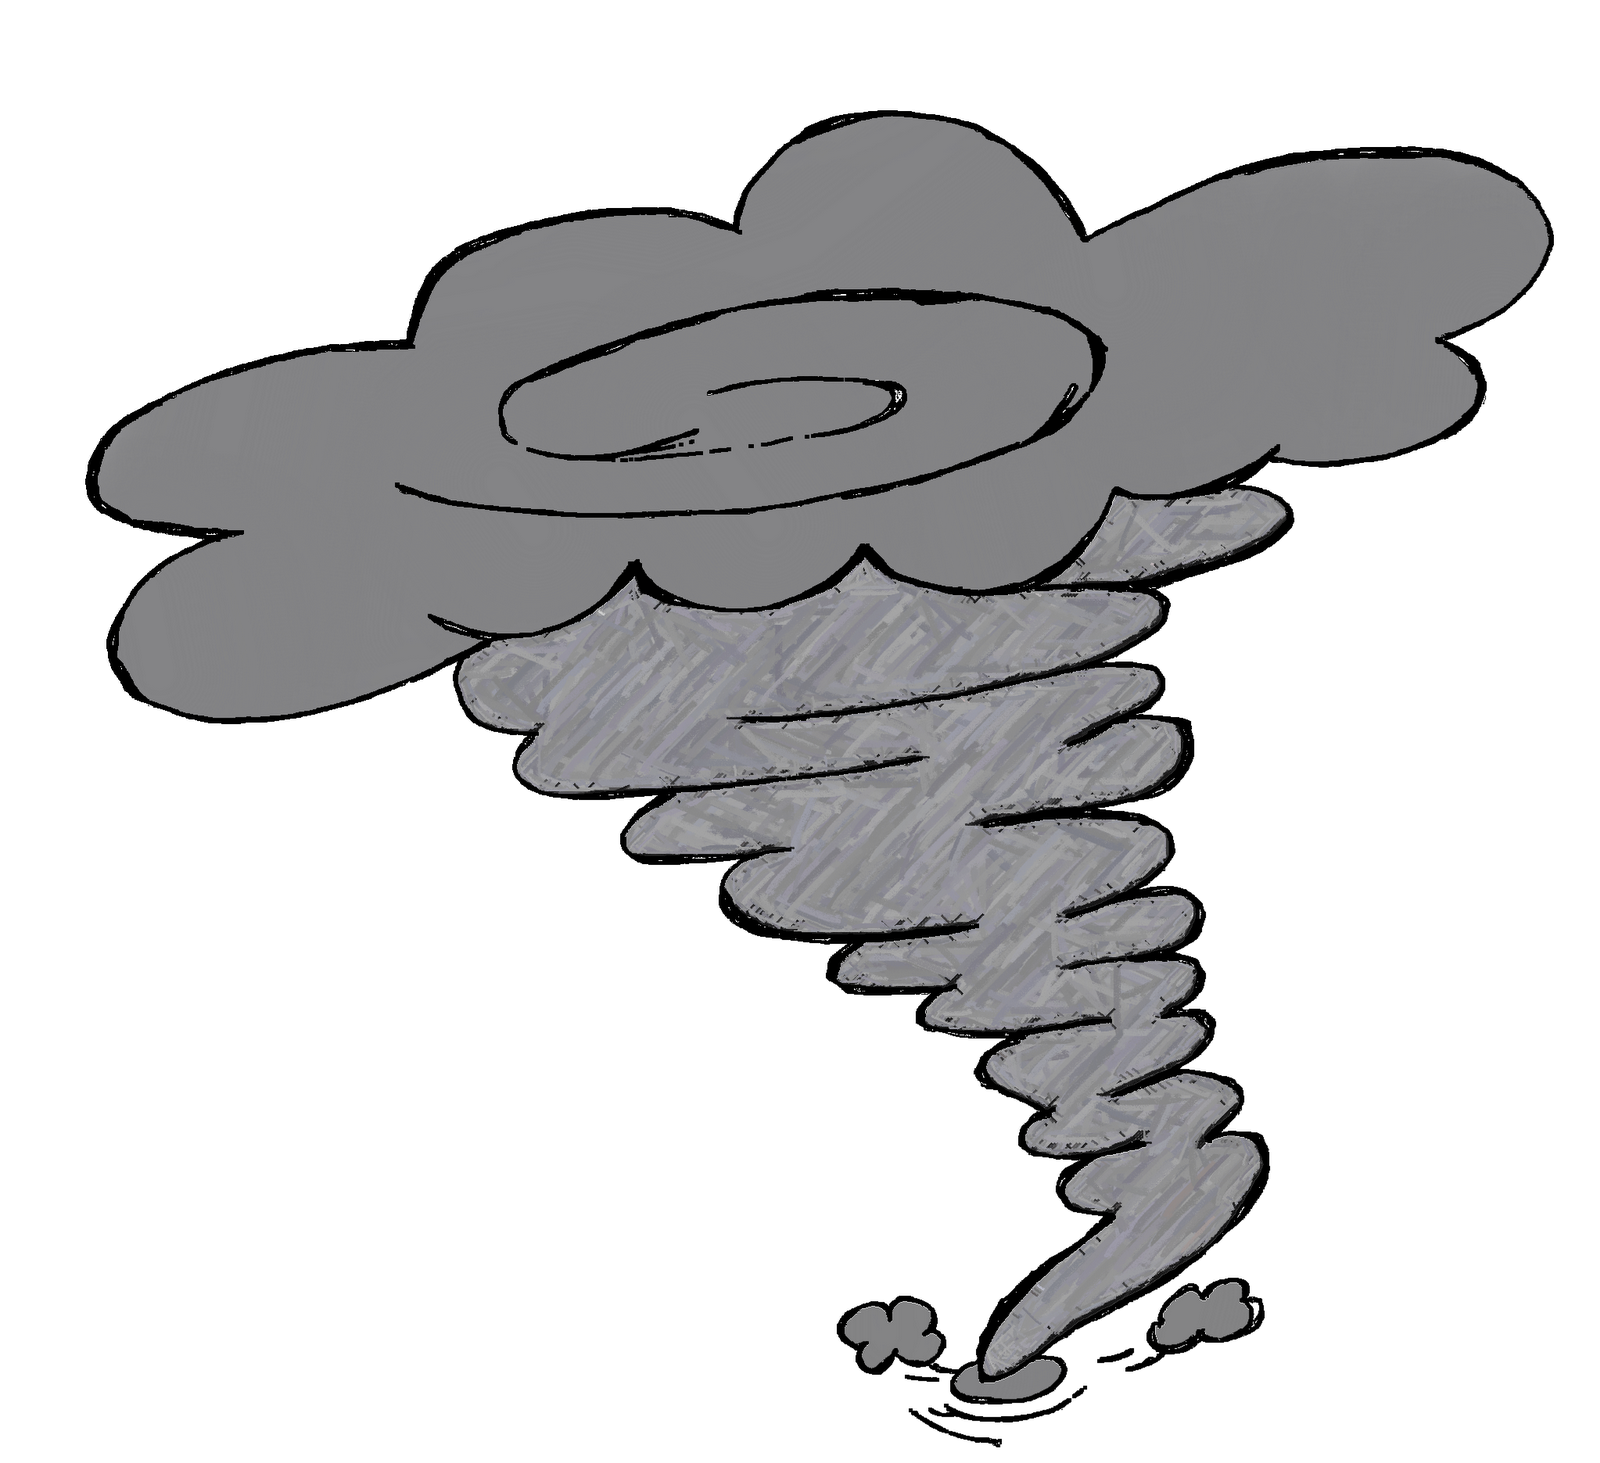 Free tornado clipart images image black and white download Tornado Clipart Black And White | Clipart Panda - Free Clipart ... image black and white download